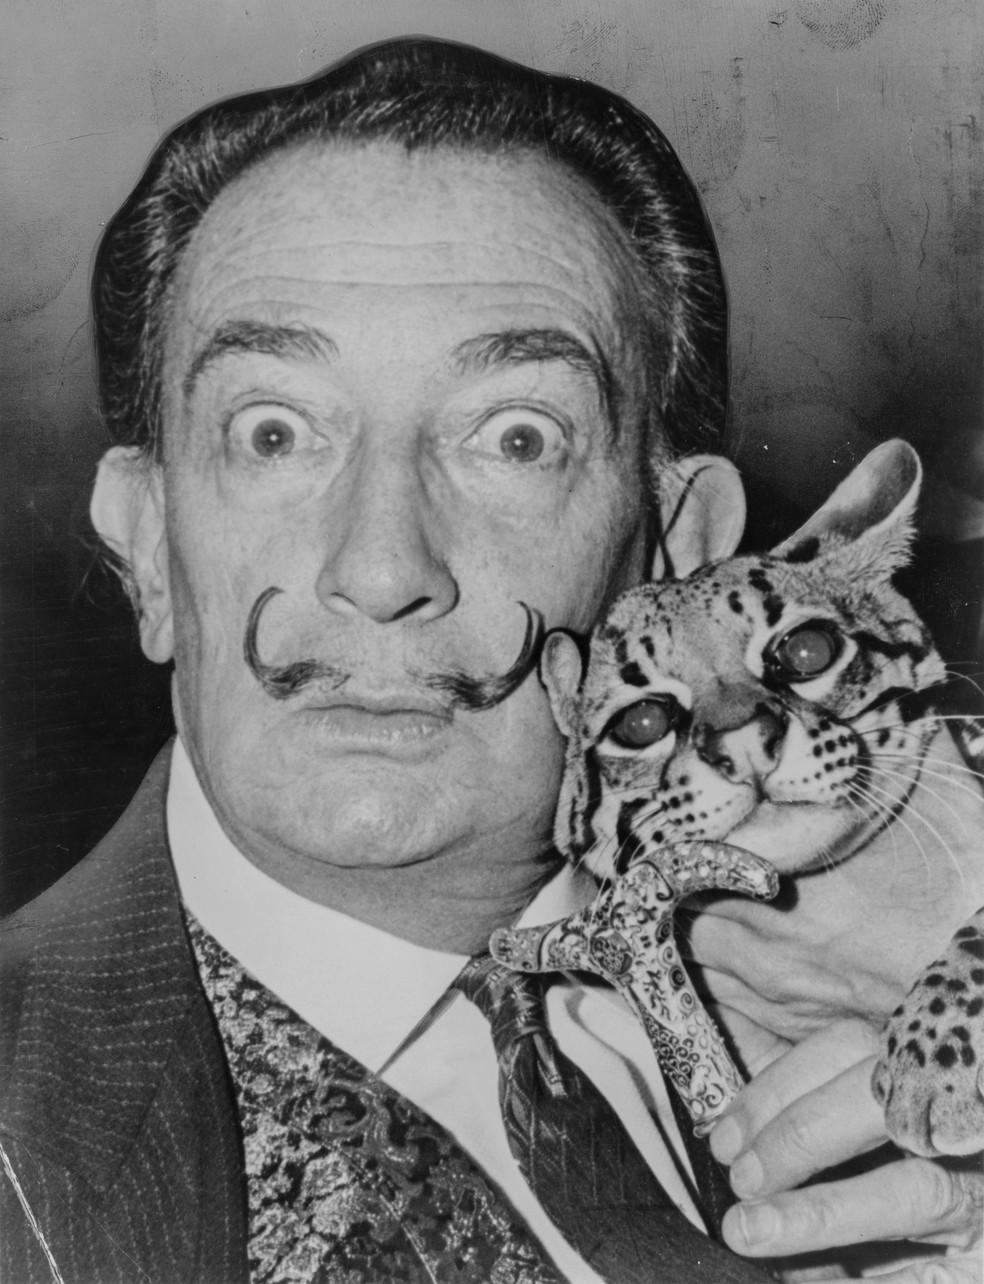 O pintor surrealista Salvador Dalí  (Foto: Roger Higgins/United States Library of Congress's Prints and Photographs division)